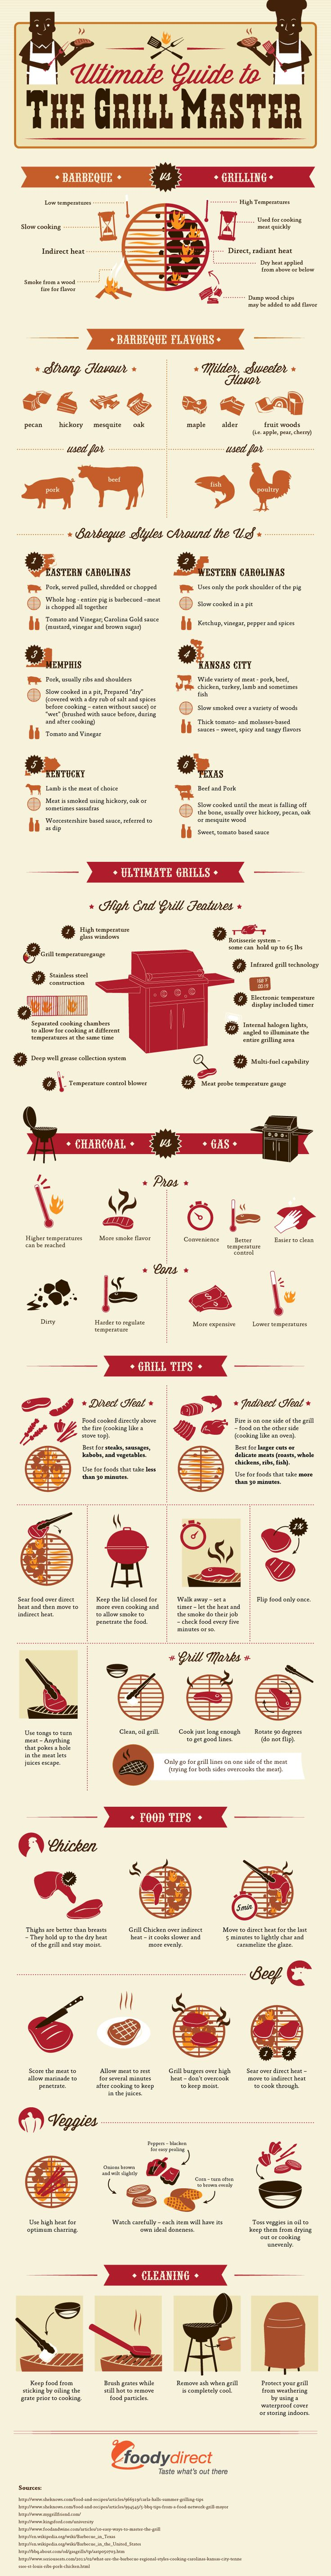 "Whether you're a backyard BBQ beginner or a long-time grilling enthusiast, you're bound to find helpful tips in our newest infographic, ""Ultimate Guide to the Grill Master."""